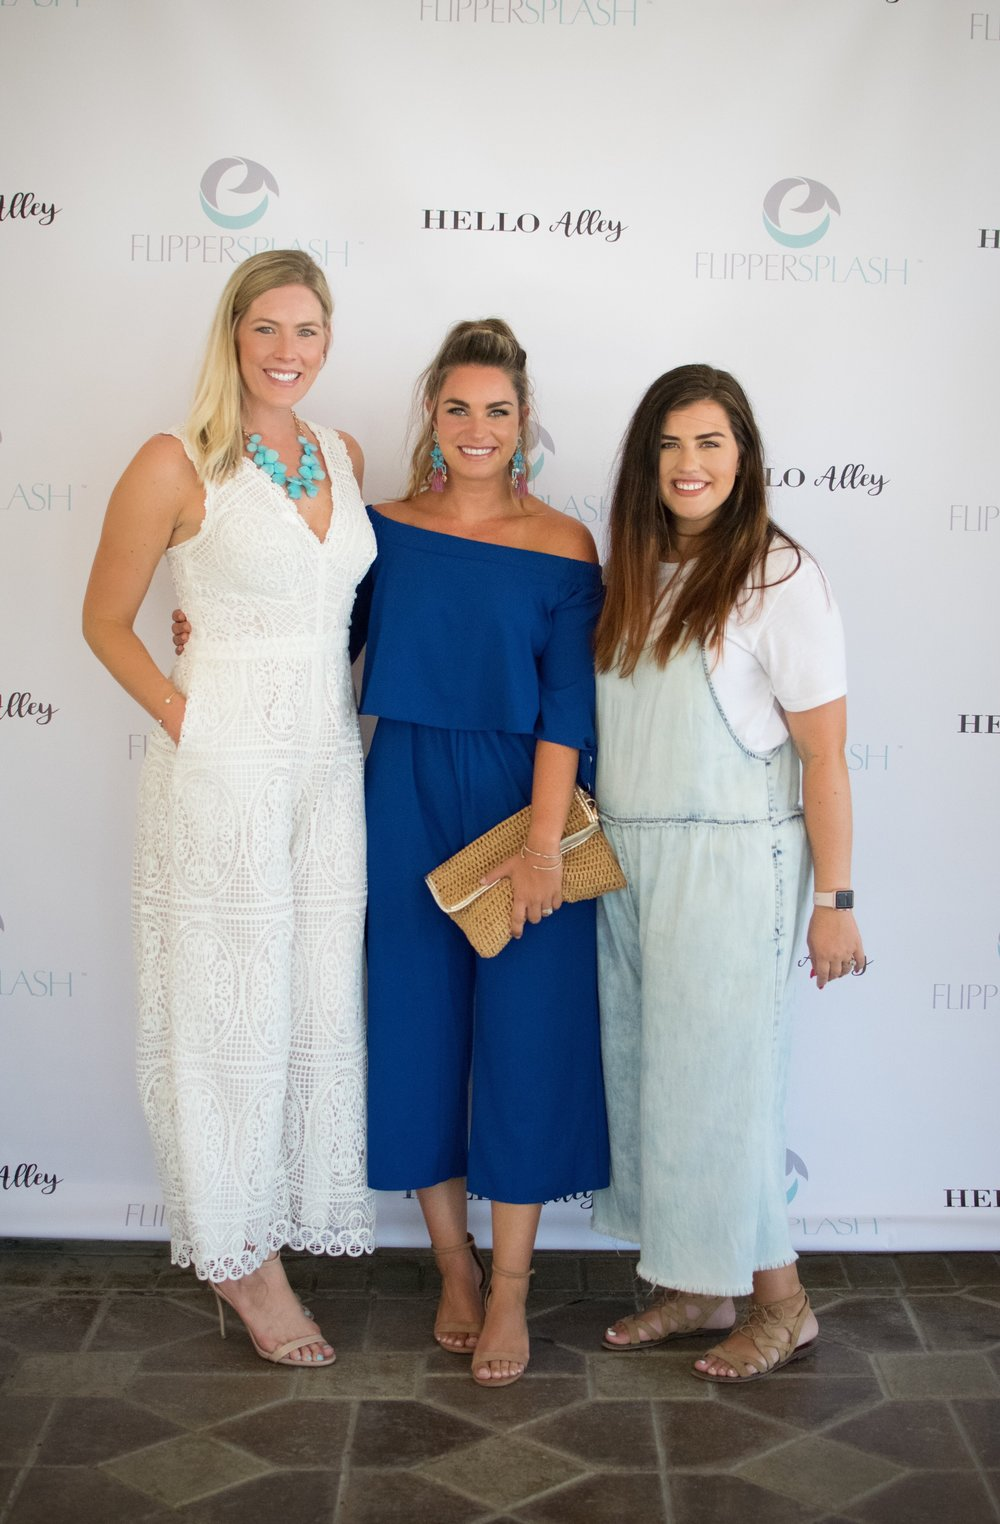 Style Collective Sisters Summer Social Series -featuring all the hottest Jacksonville bloggers featured by top US fashion blog, The Borrowed Babes